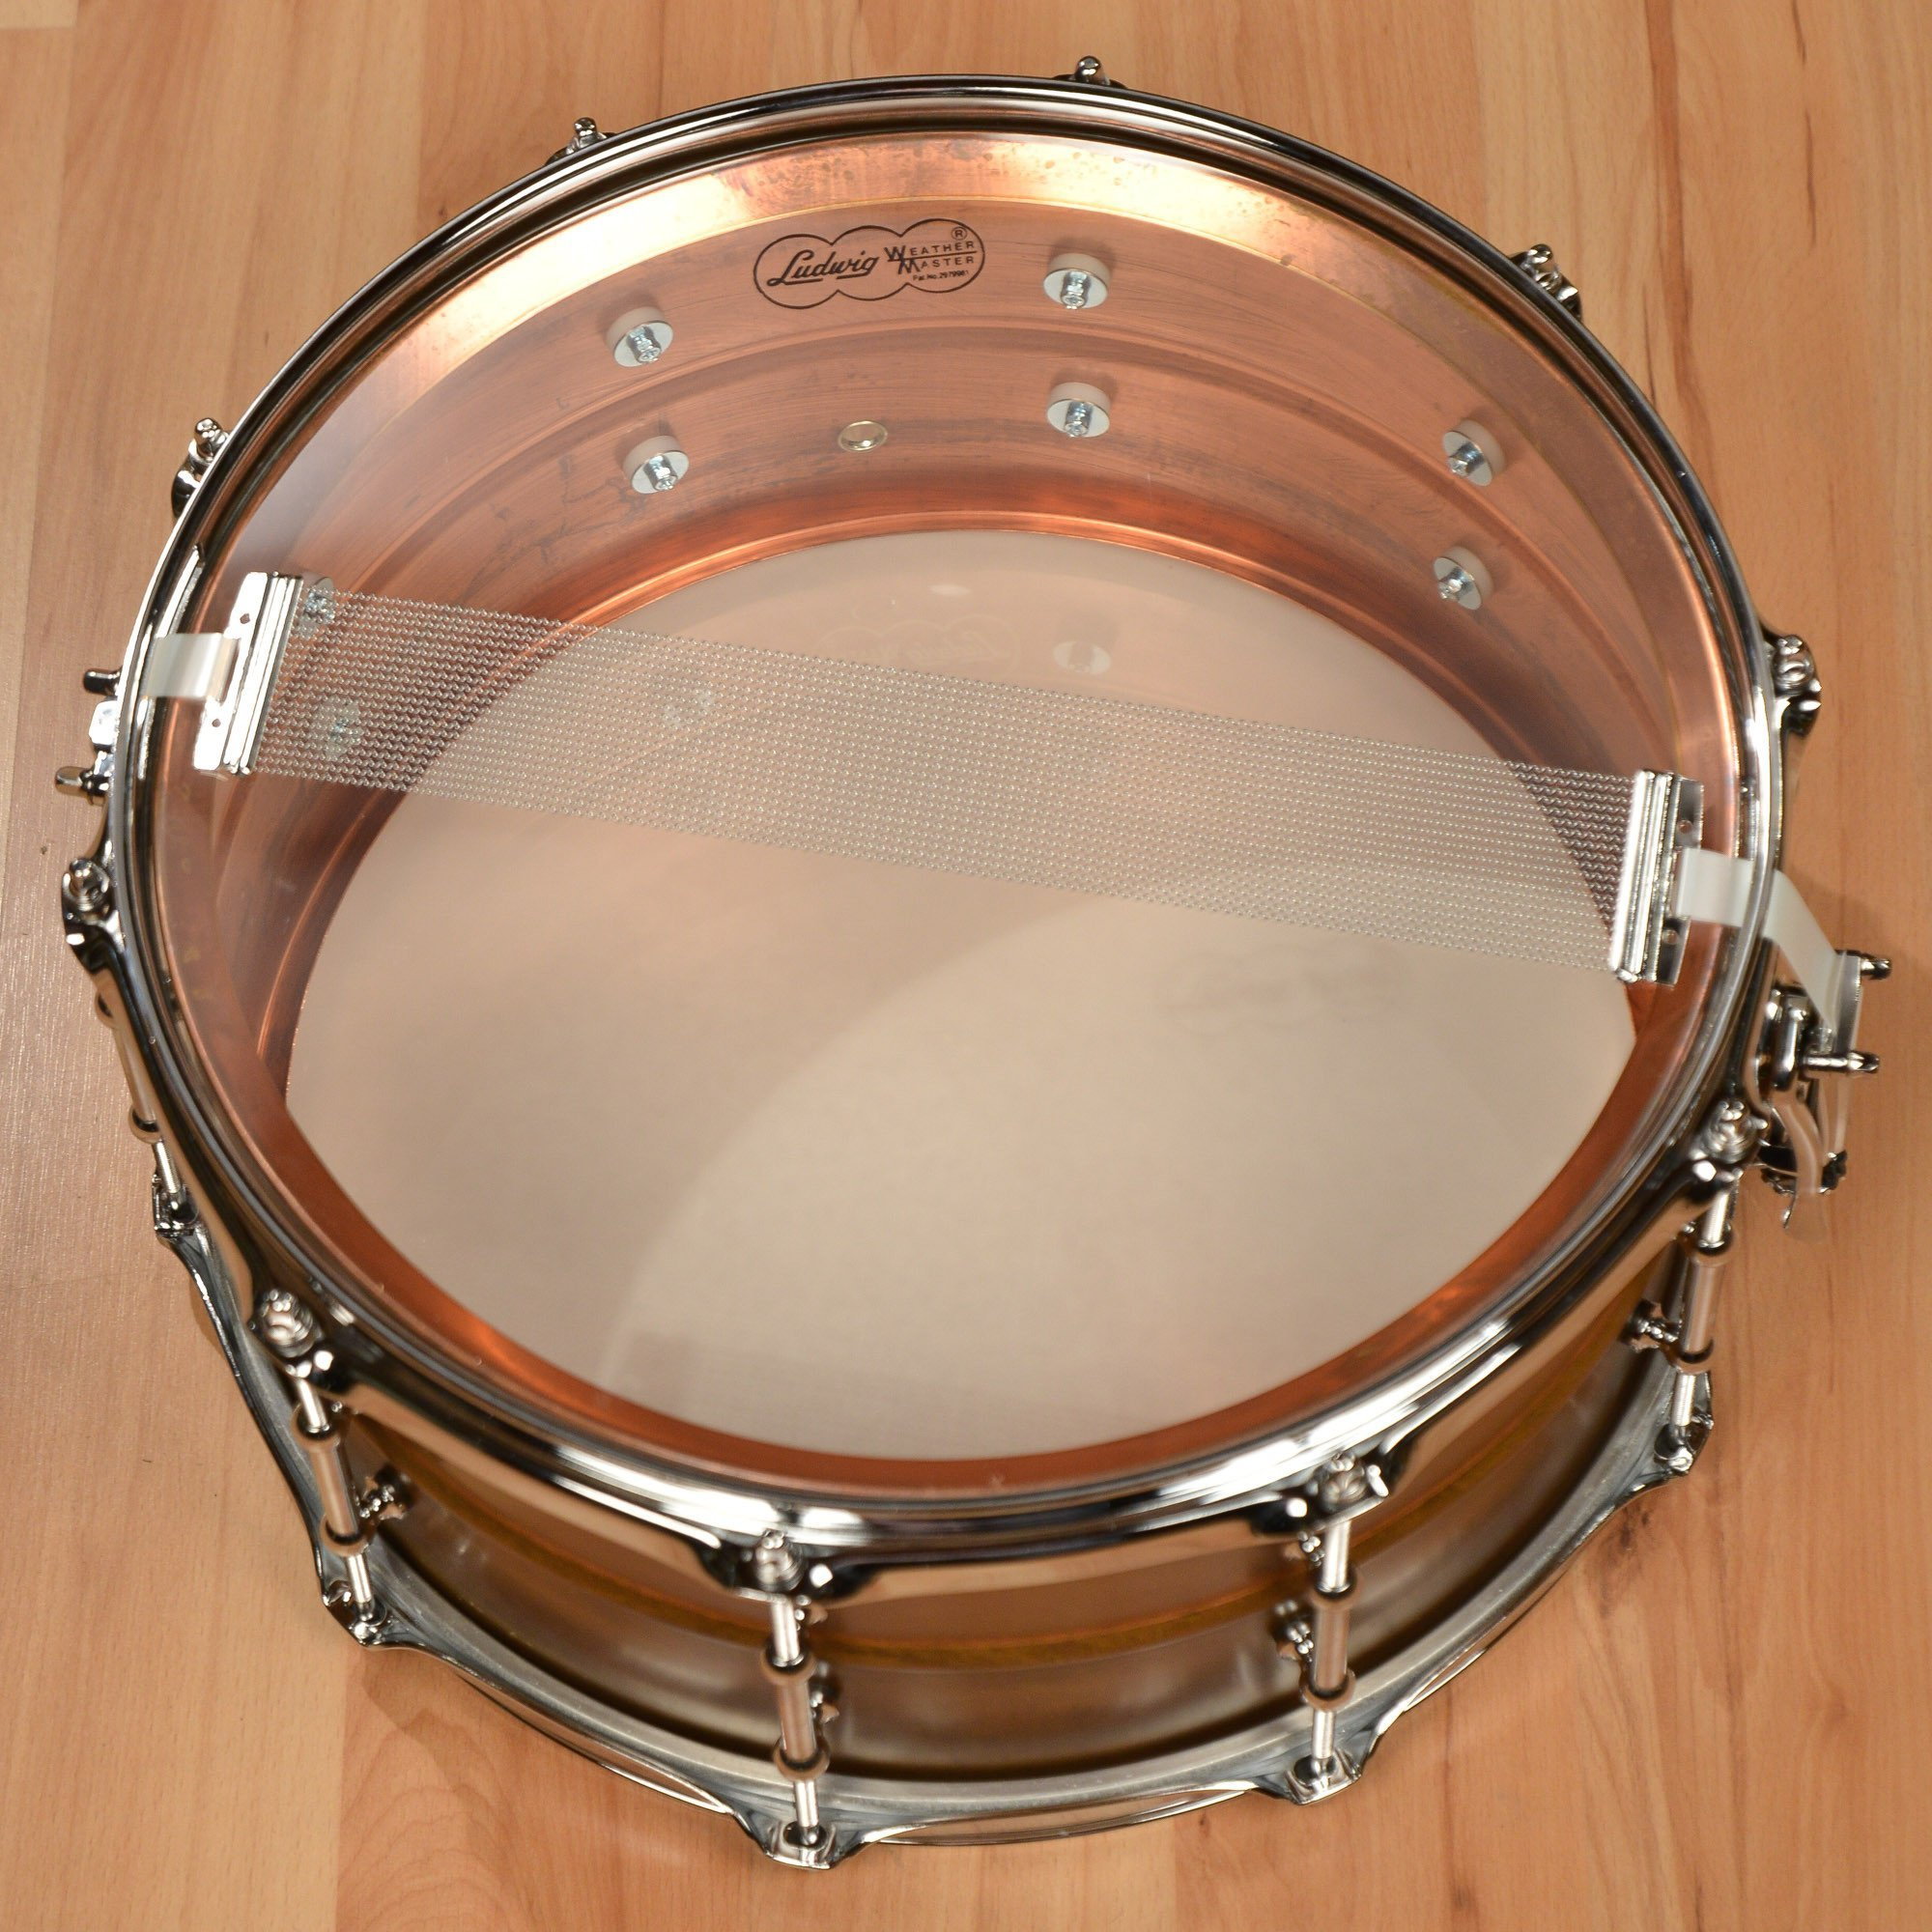 Ludwig Copper Phonic Smooth Snare Drum 14 x 6.5 in. Raw Smooth Finish with Tube Lugs by Ludwig (Image #6)